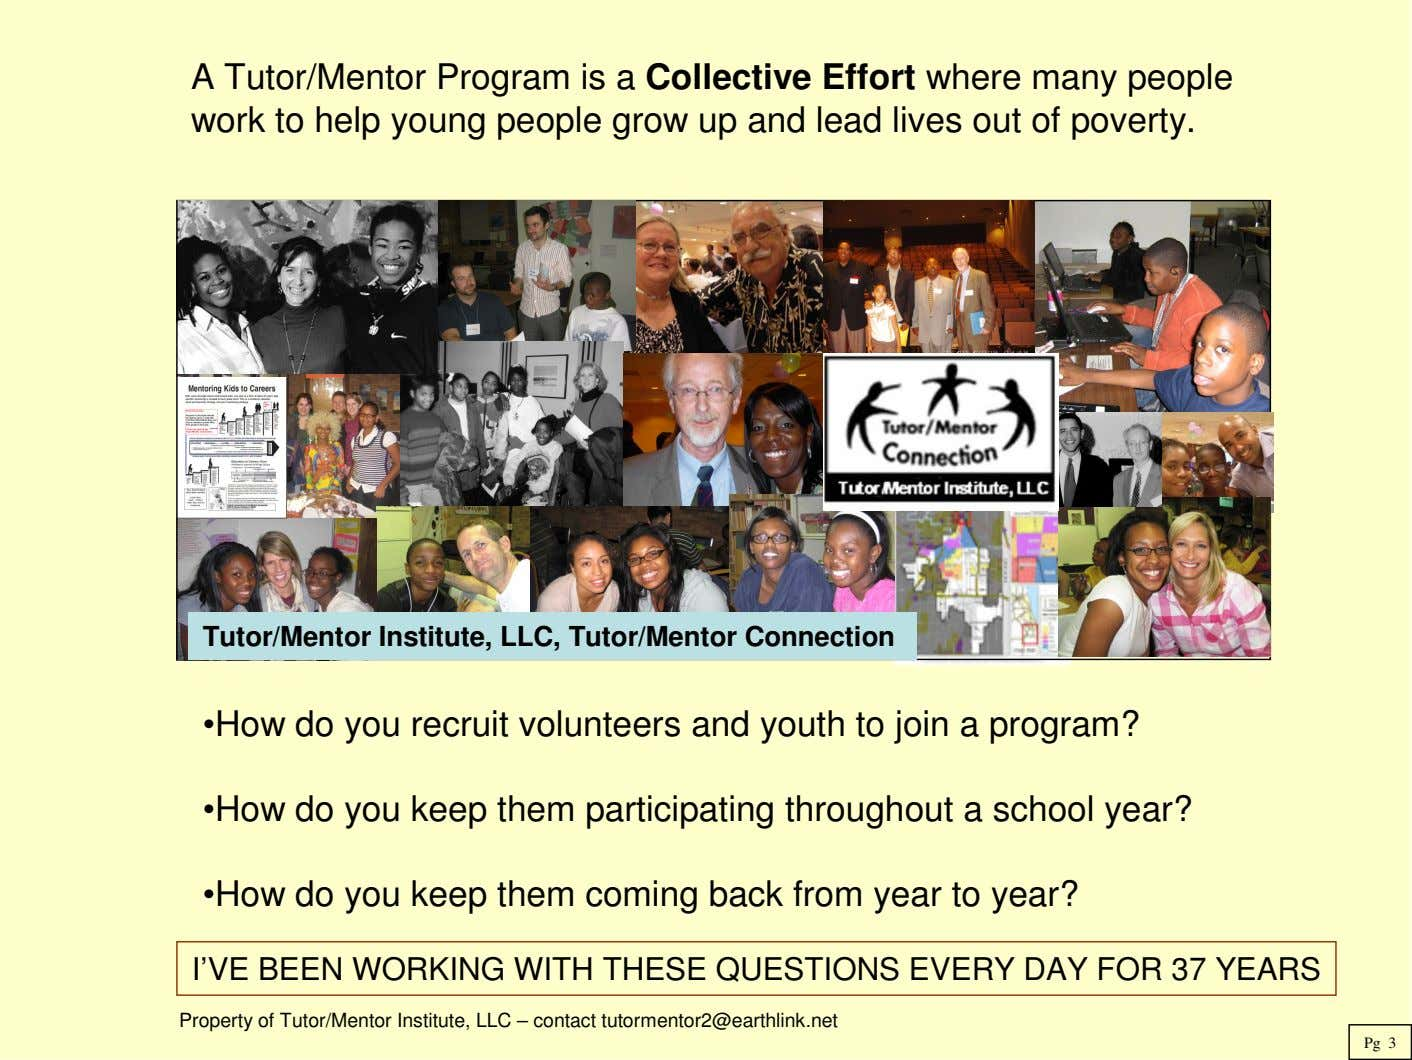 A Tutor/Mentor Program is a Collective Effort where many people work to help young people